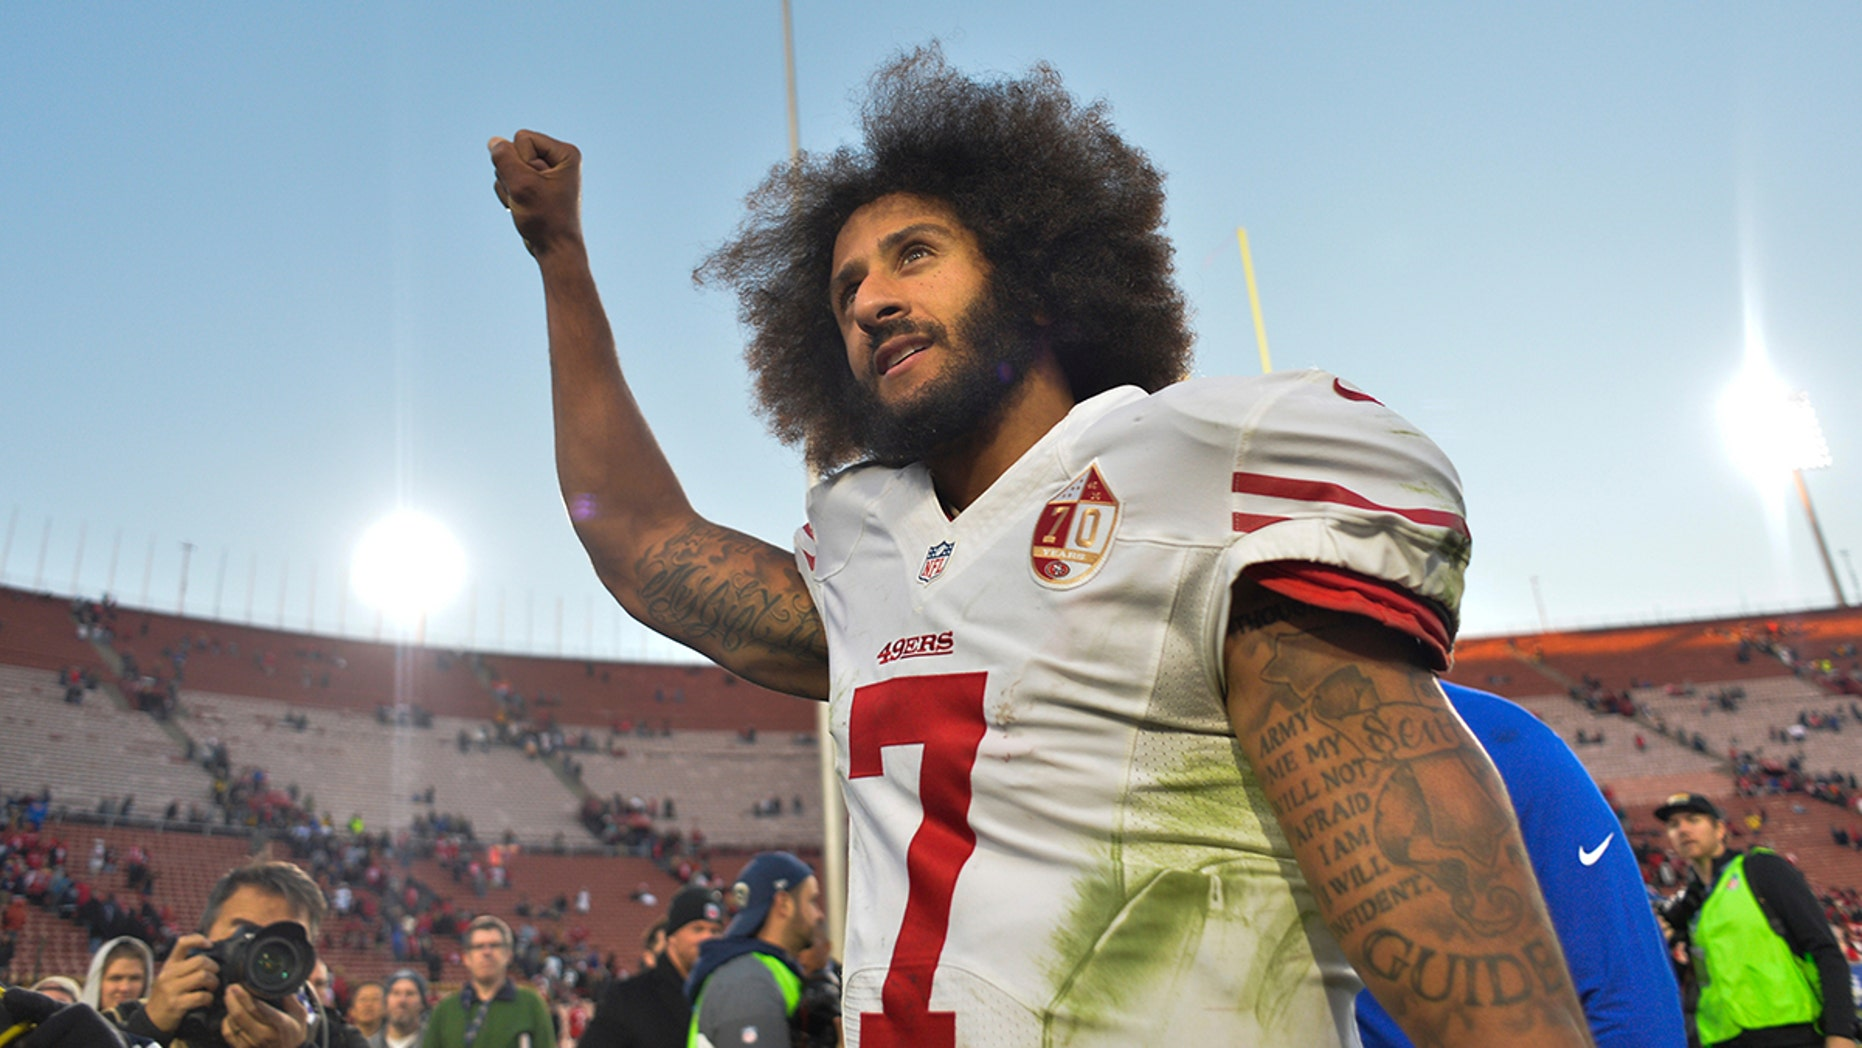 Colin Kaepernick inspired Morehouse College and the NFL to host the Advocacy in Sport Workshop this February.